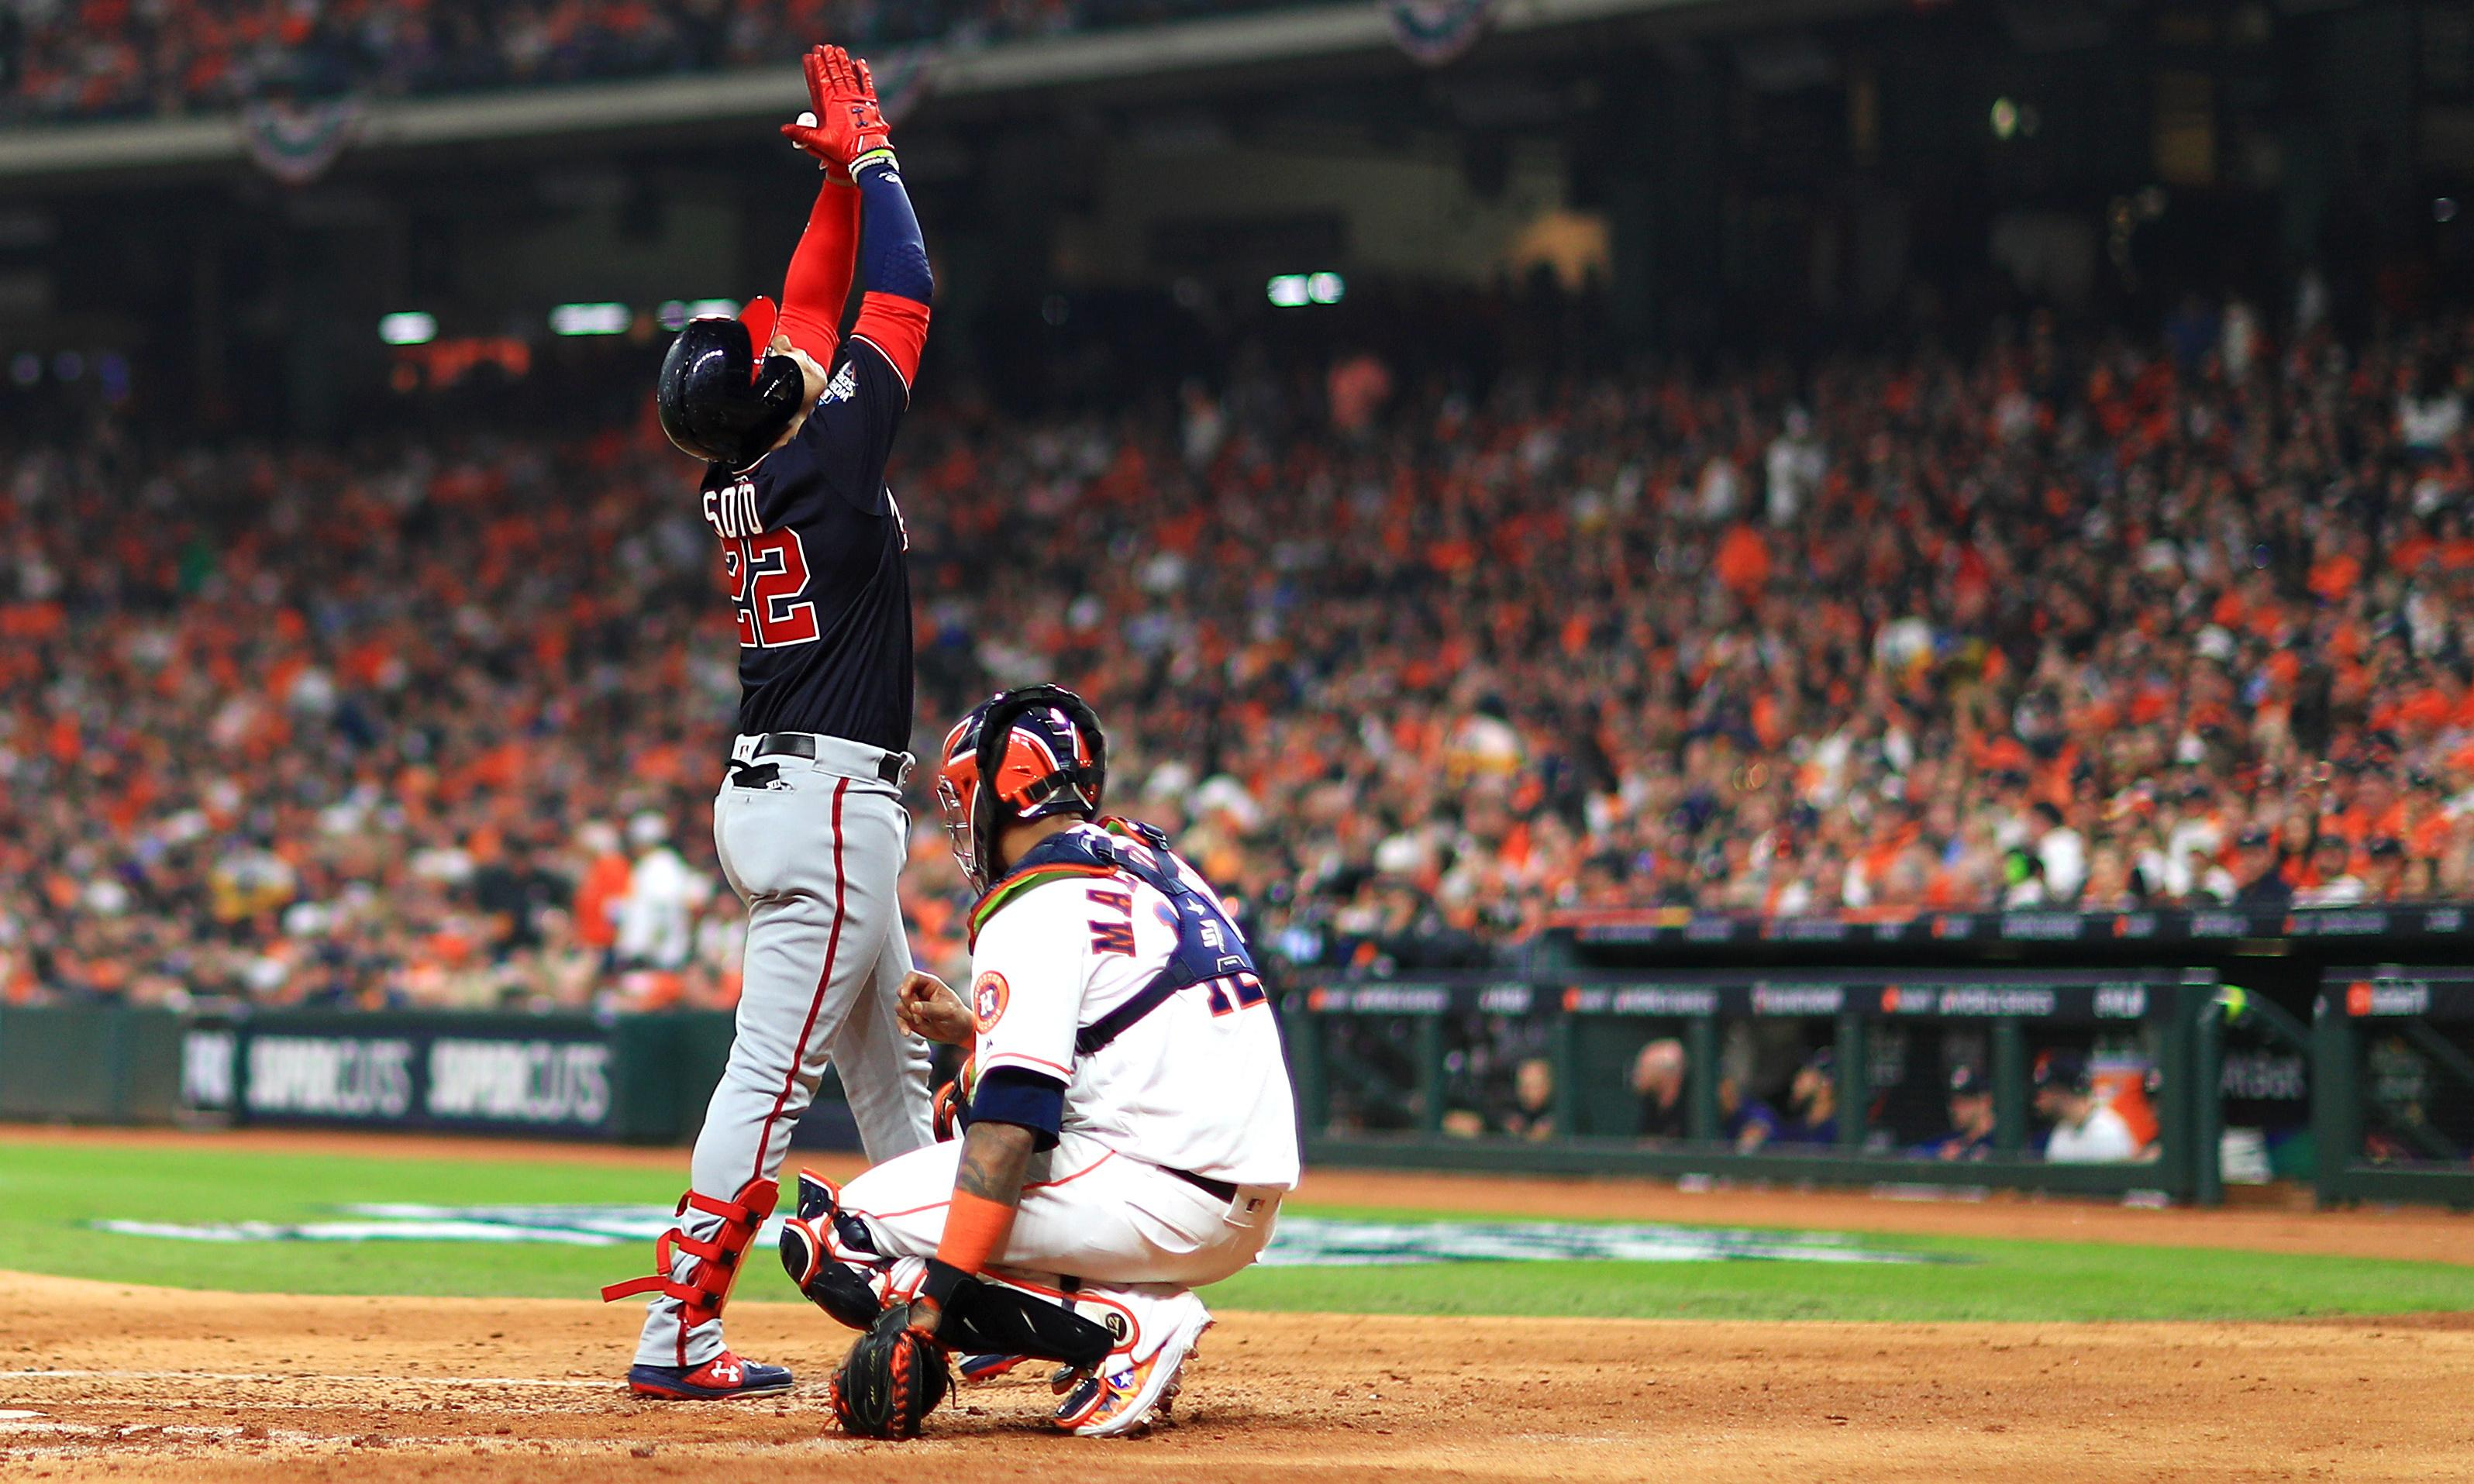 Astros lose World Series opener to Nats after sordid week off the field